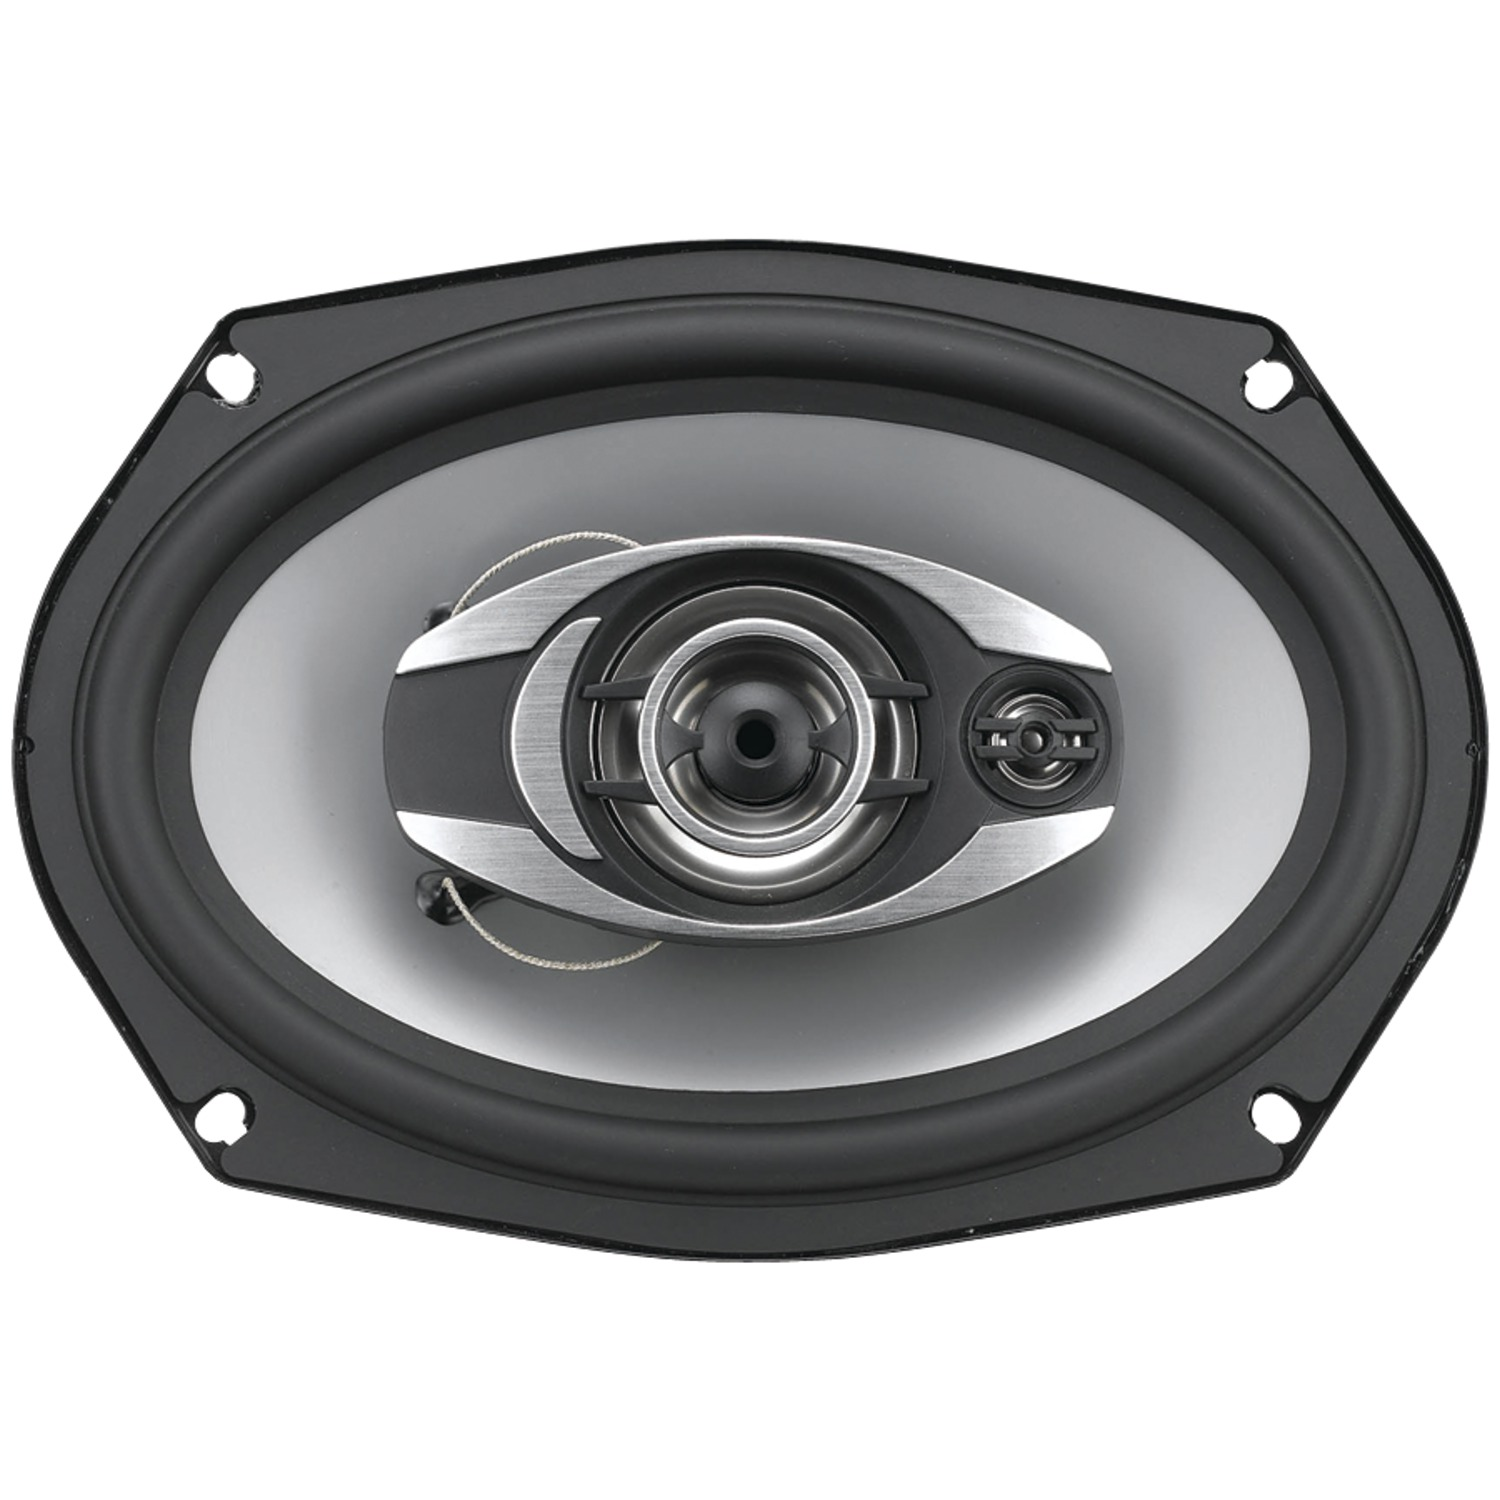 SOUNDSTORM GS369 GS Series 6 x 9 Speakers (3 Way; 400 Watts)